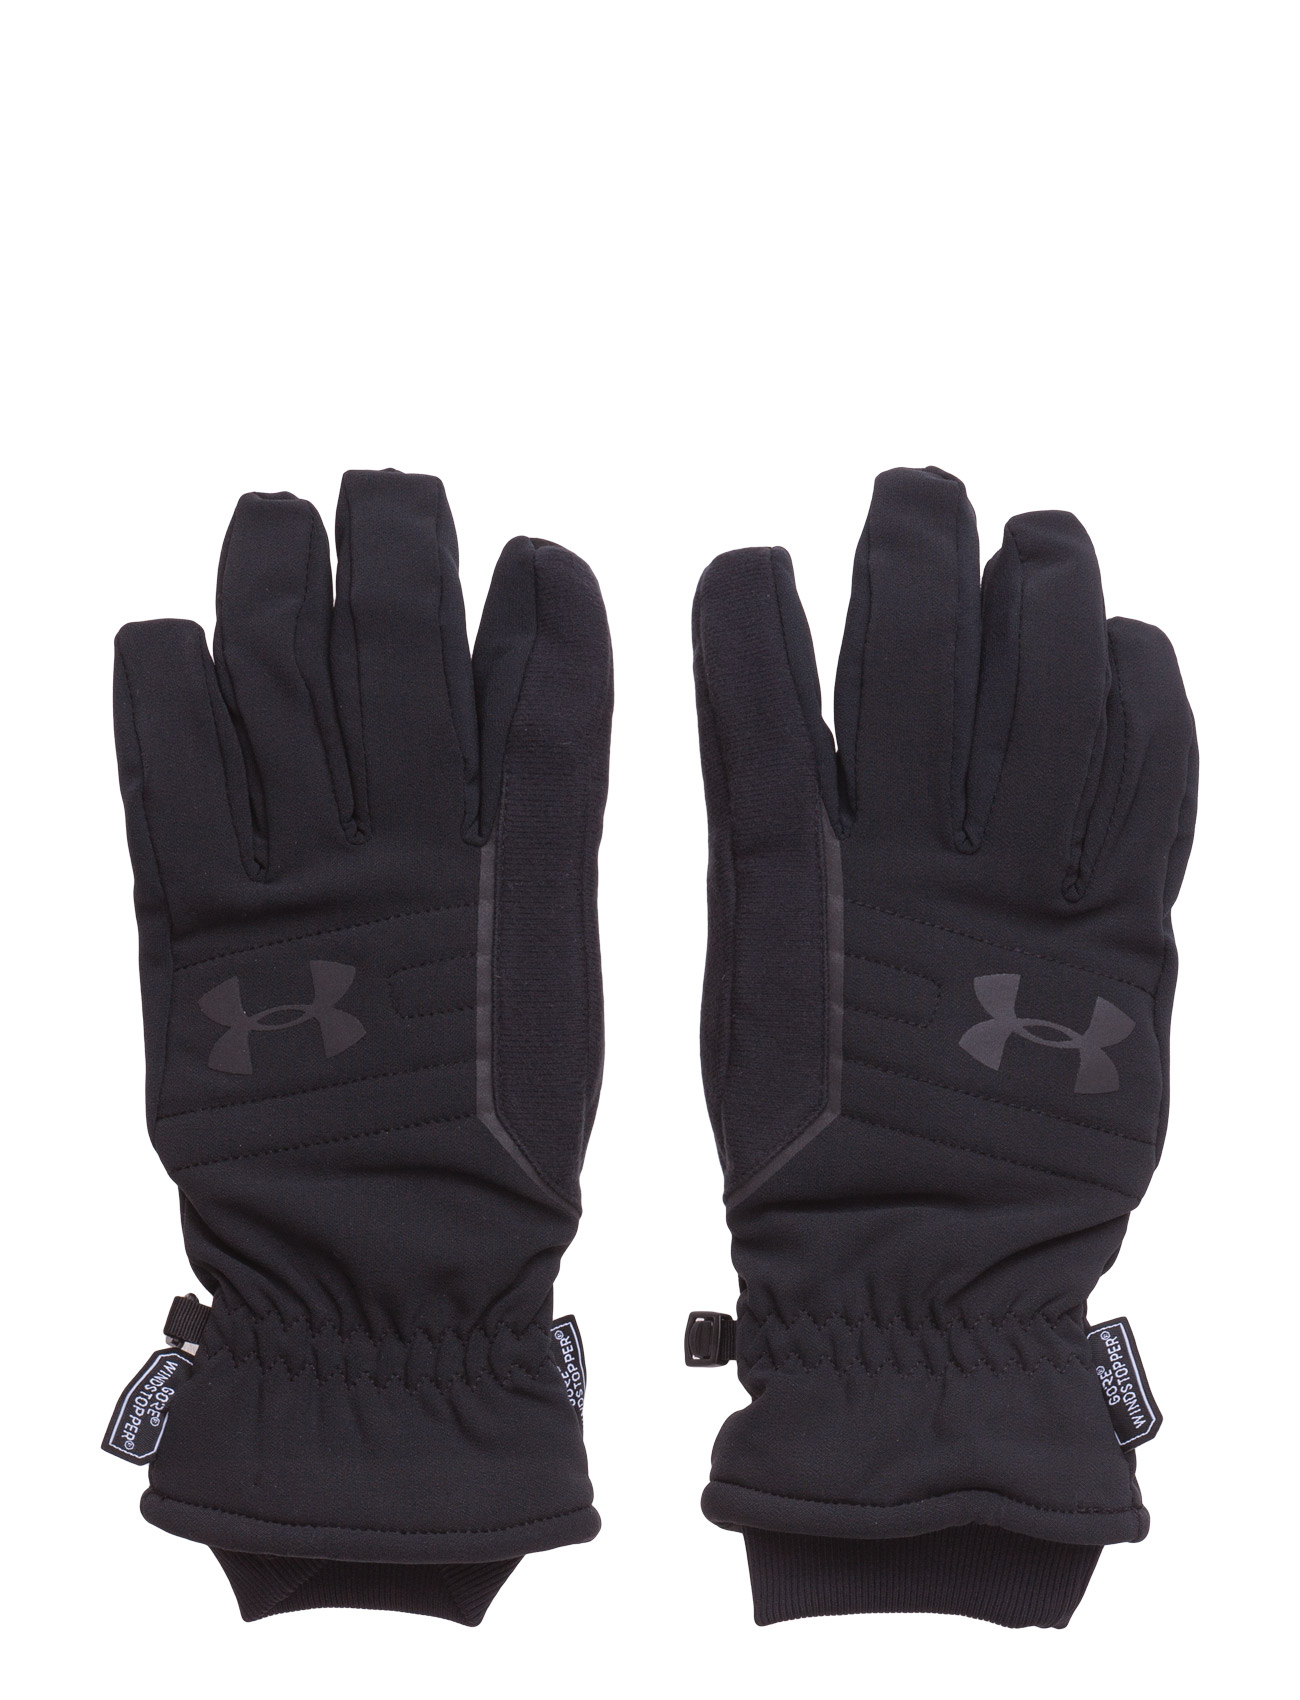 Men'S Winstopper Run Glove Under Armour Sports accessories til Herrer i Sort